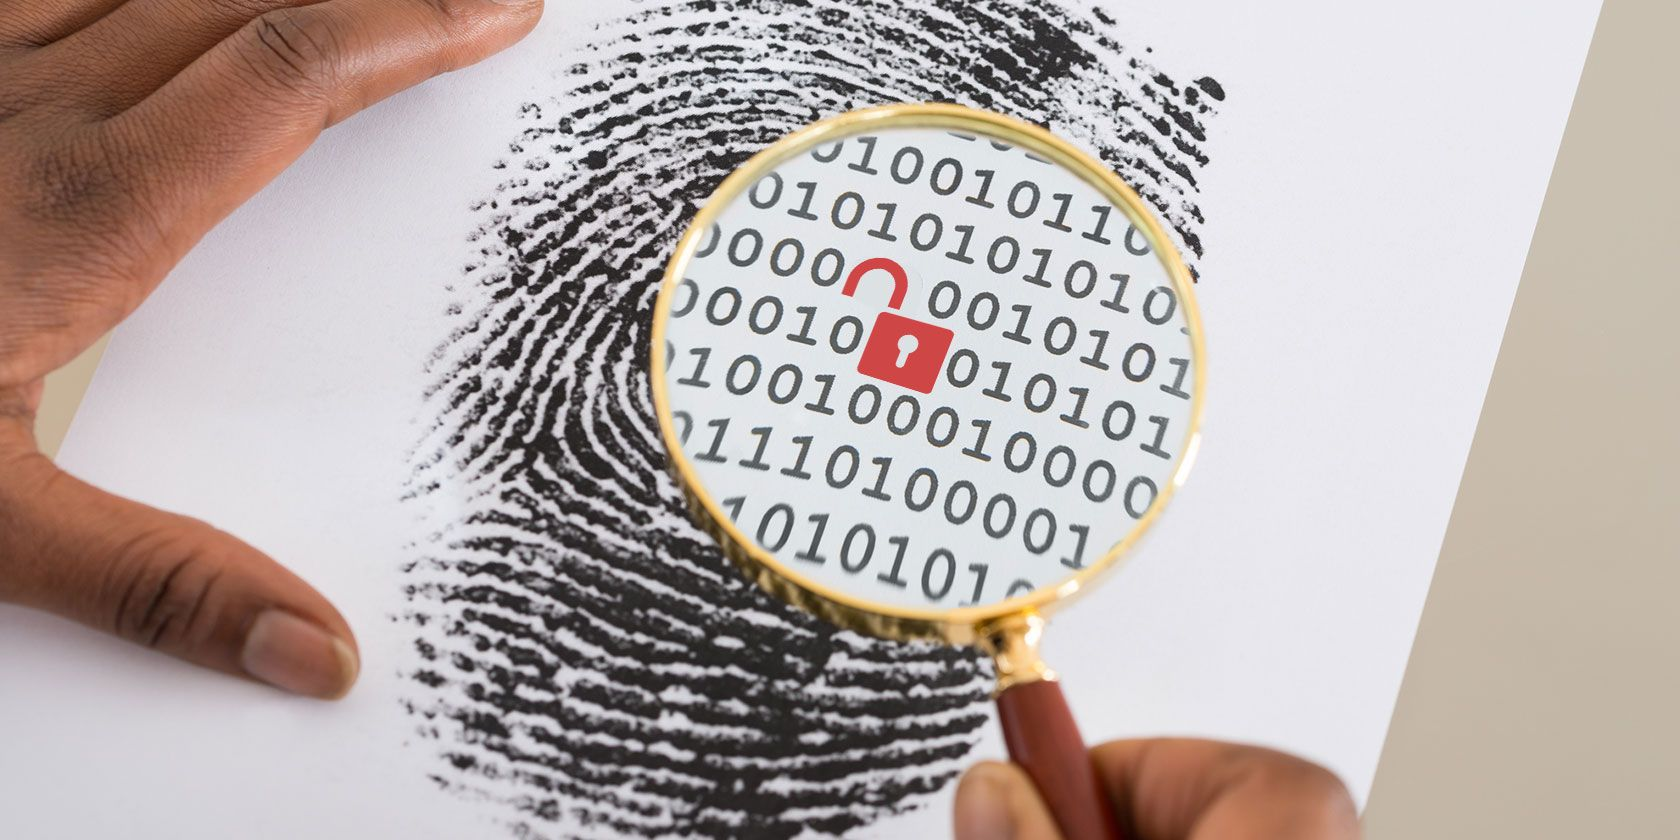 5 Ways Hackers Bypass Fingerprint Scanners (How to Protect Yourself)